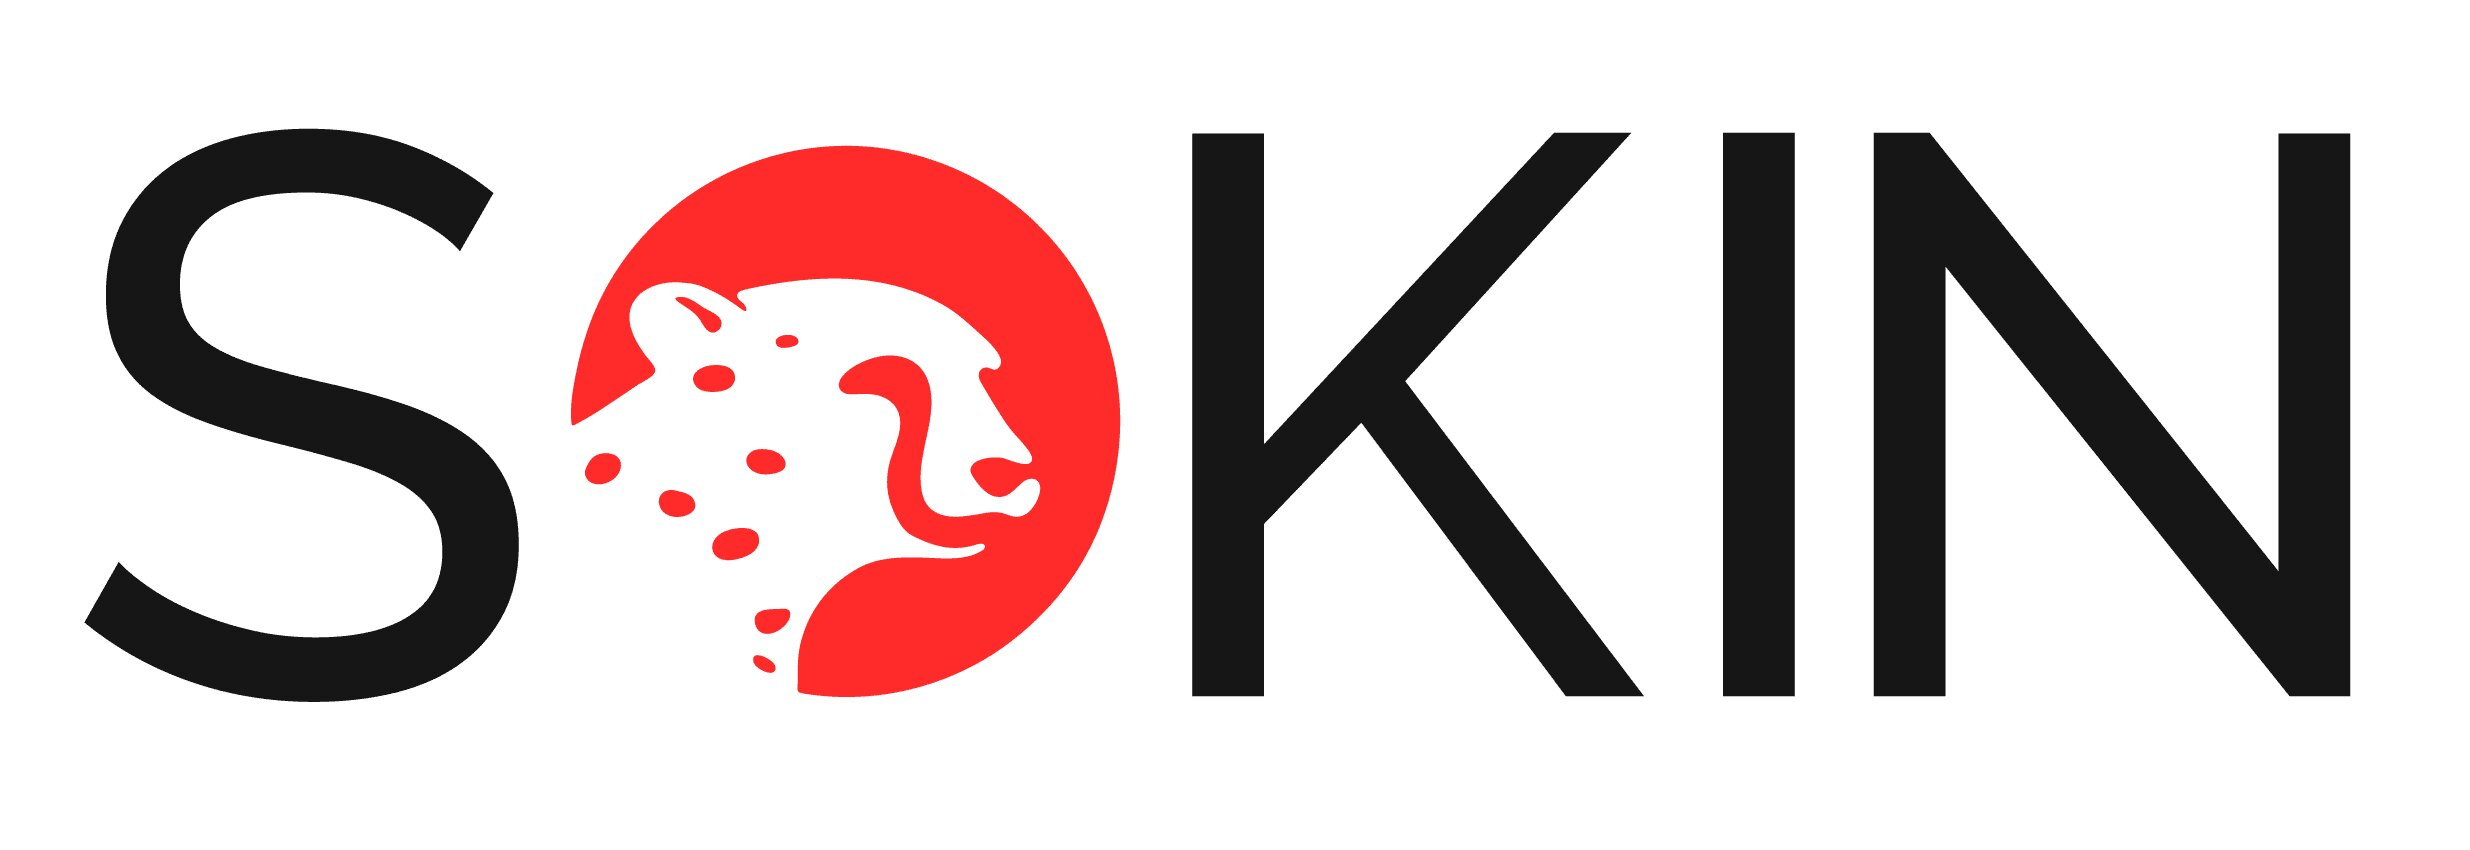 Sokin Partners with Transact Payments for the UK and European Markets